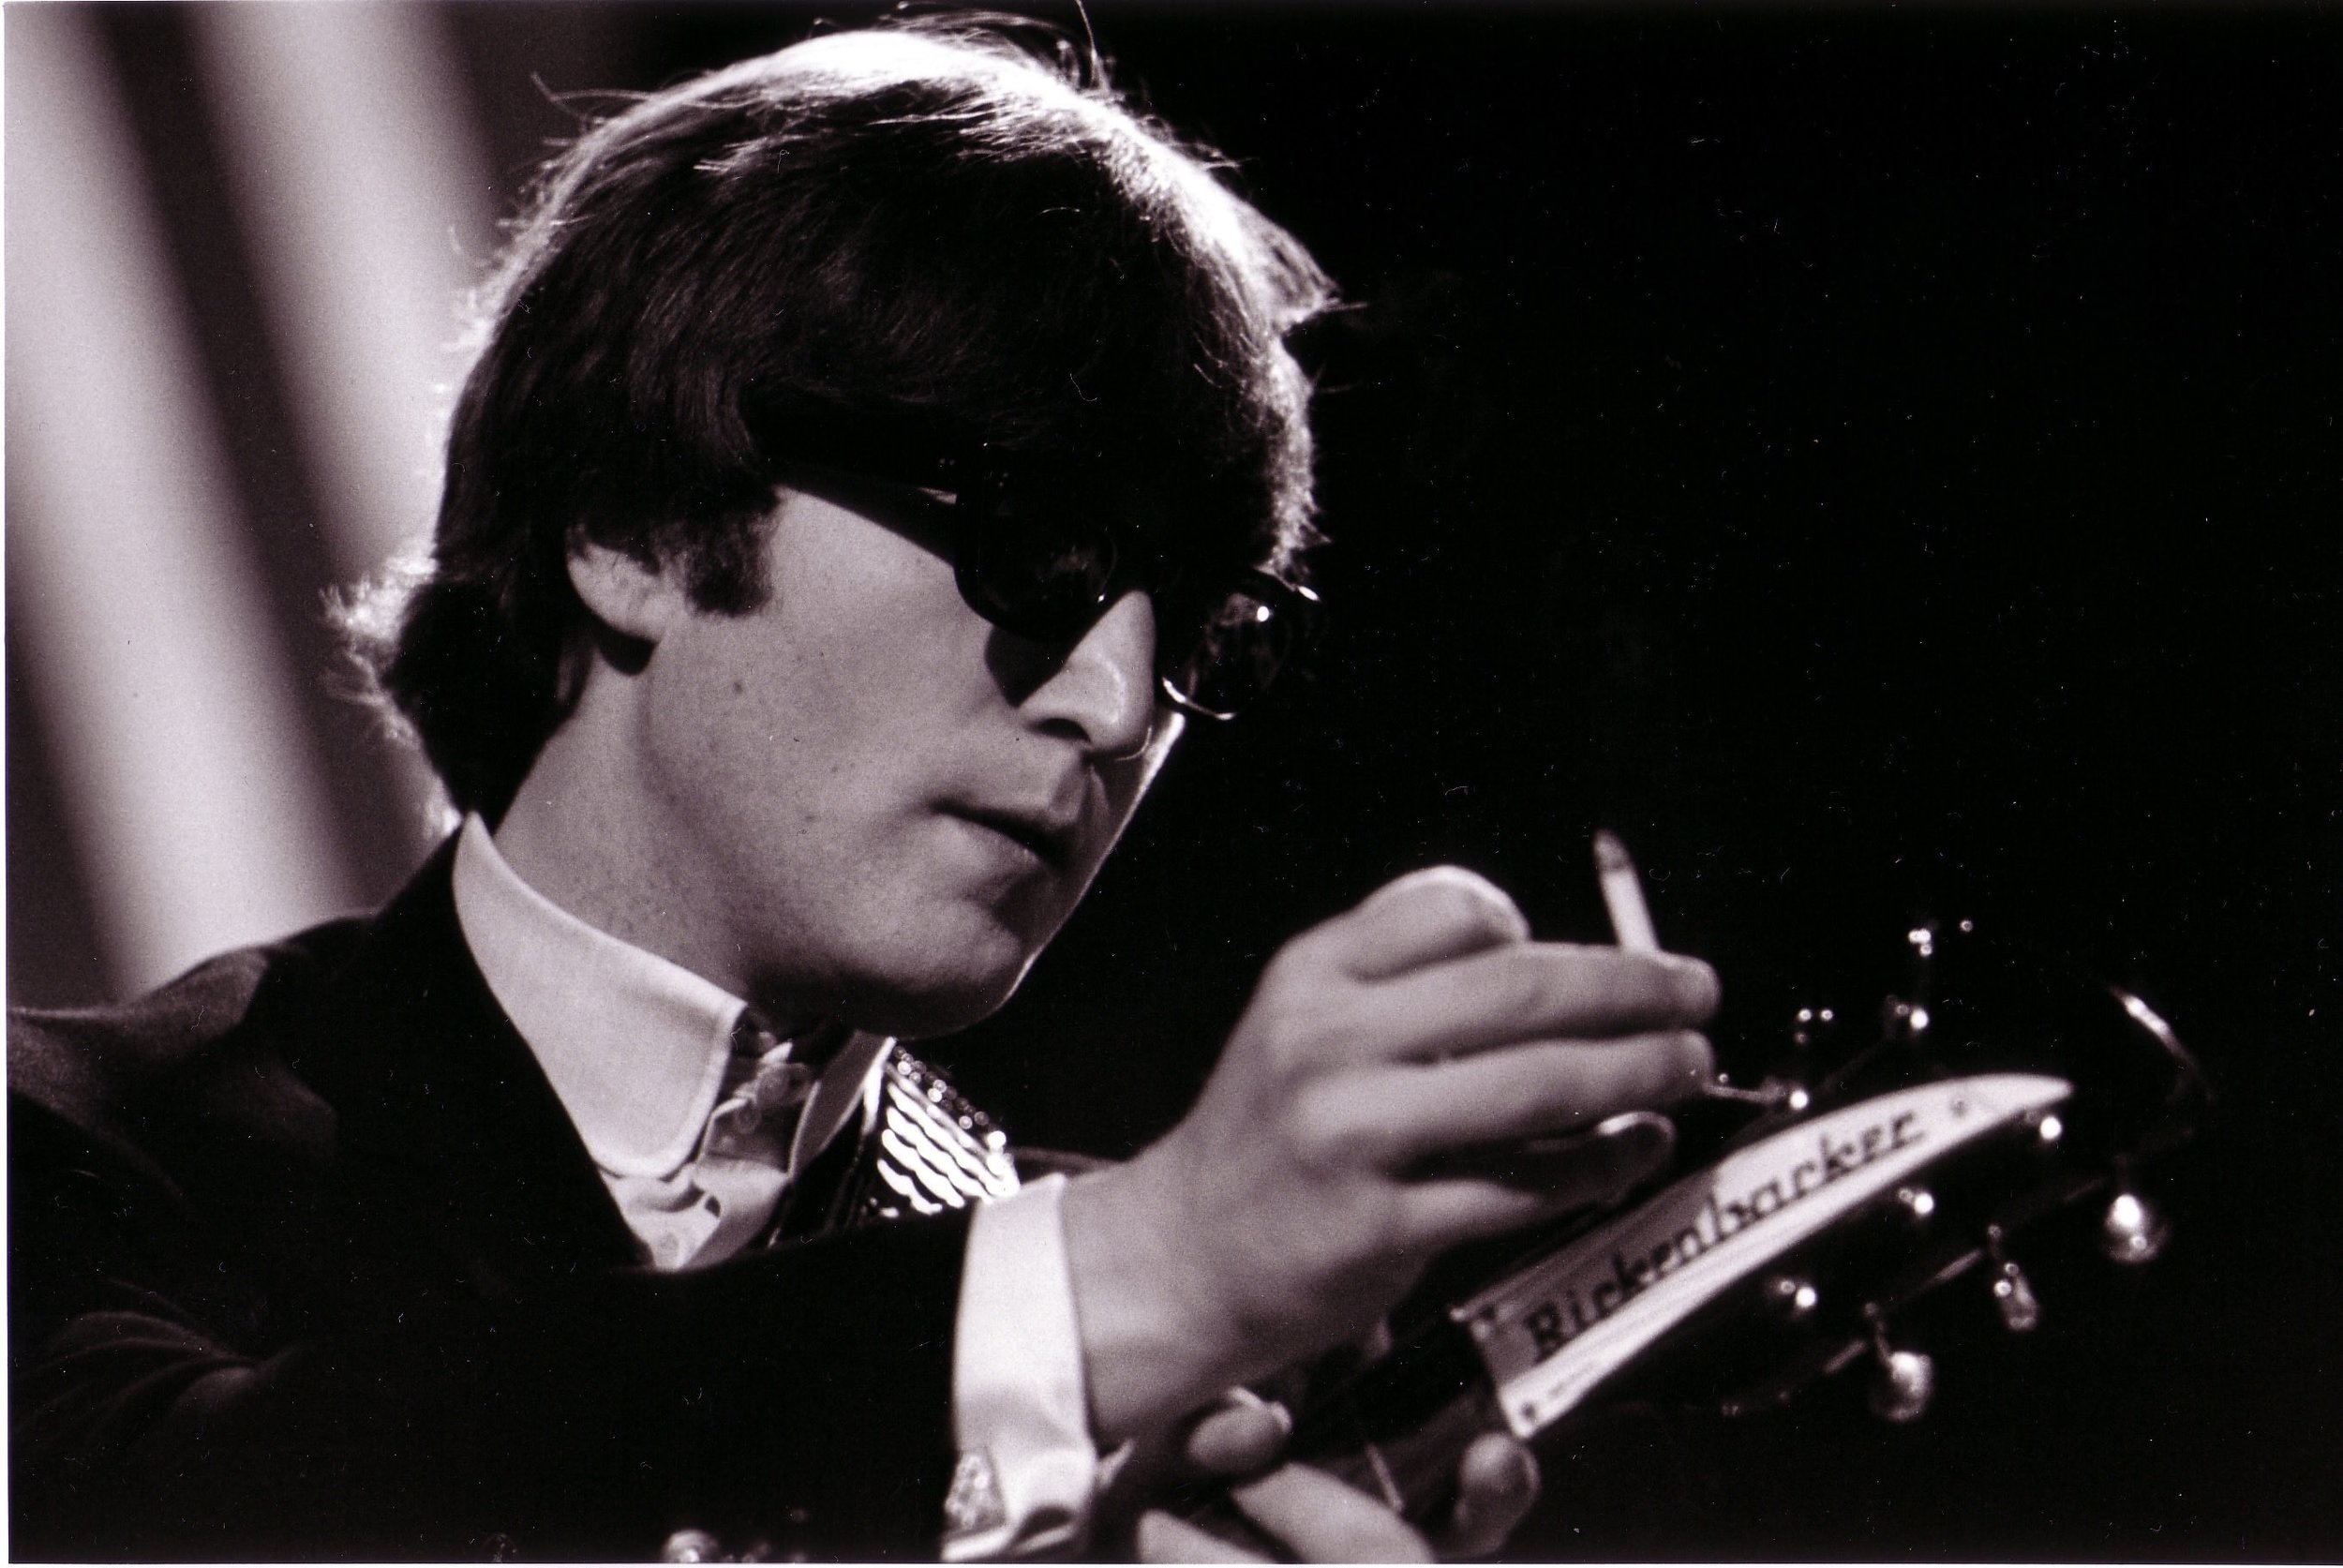 Me & My Rickenbaker: John Lennon at Rehearals for TV Show 'Top of the Pops', Teddington Studios, London, 1964